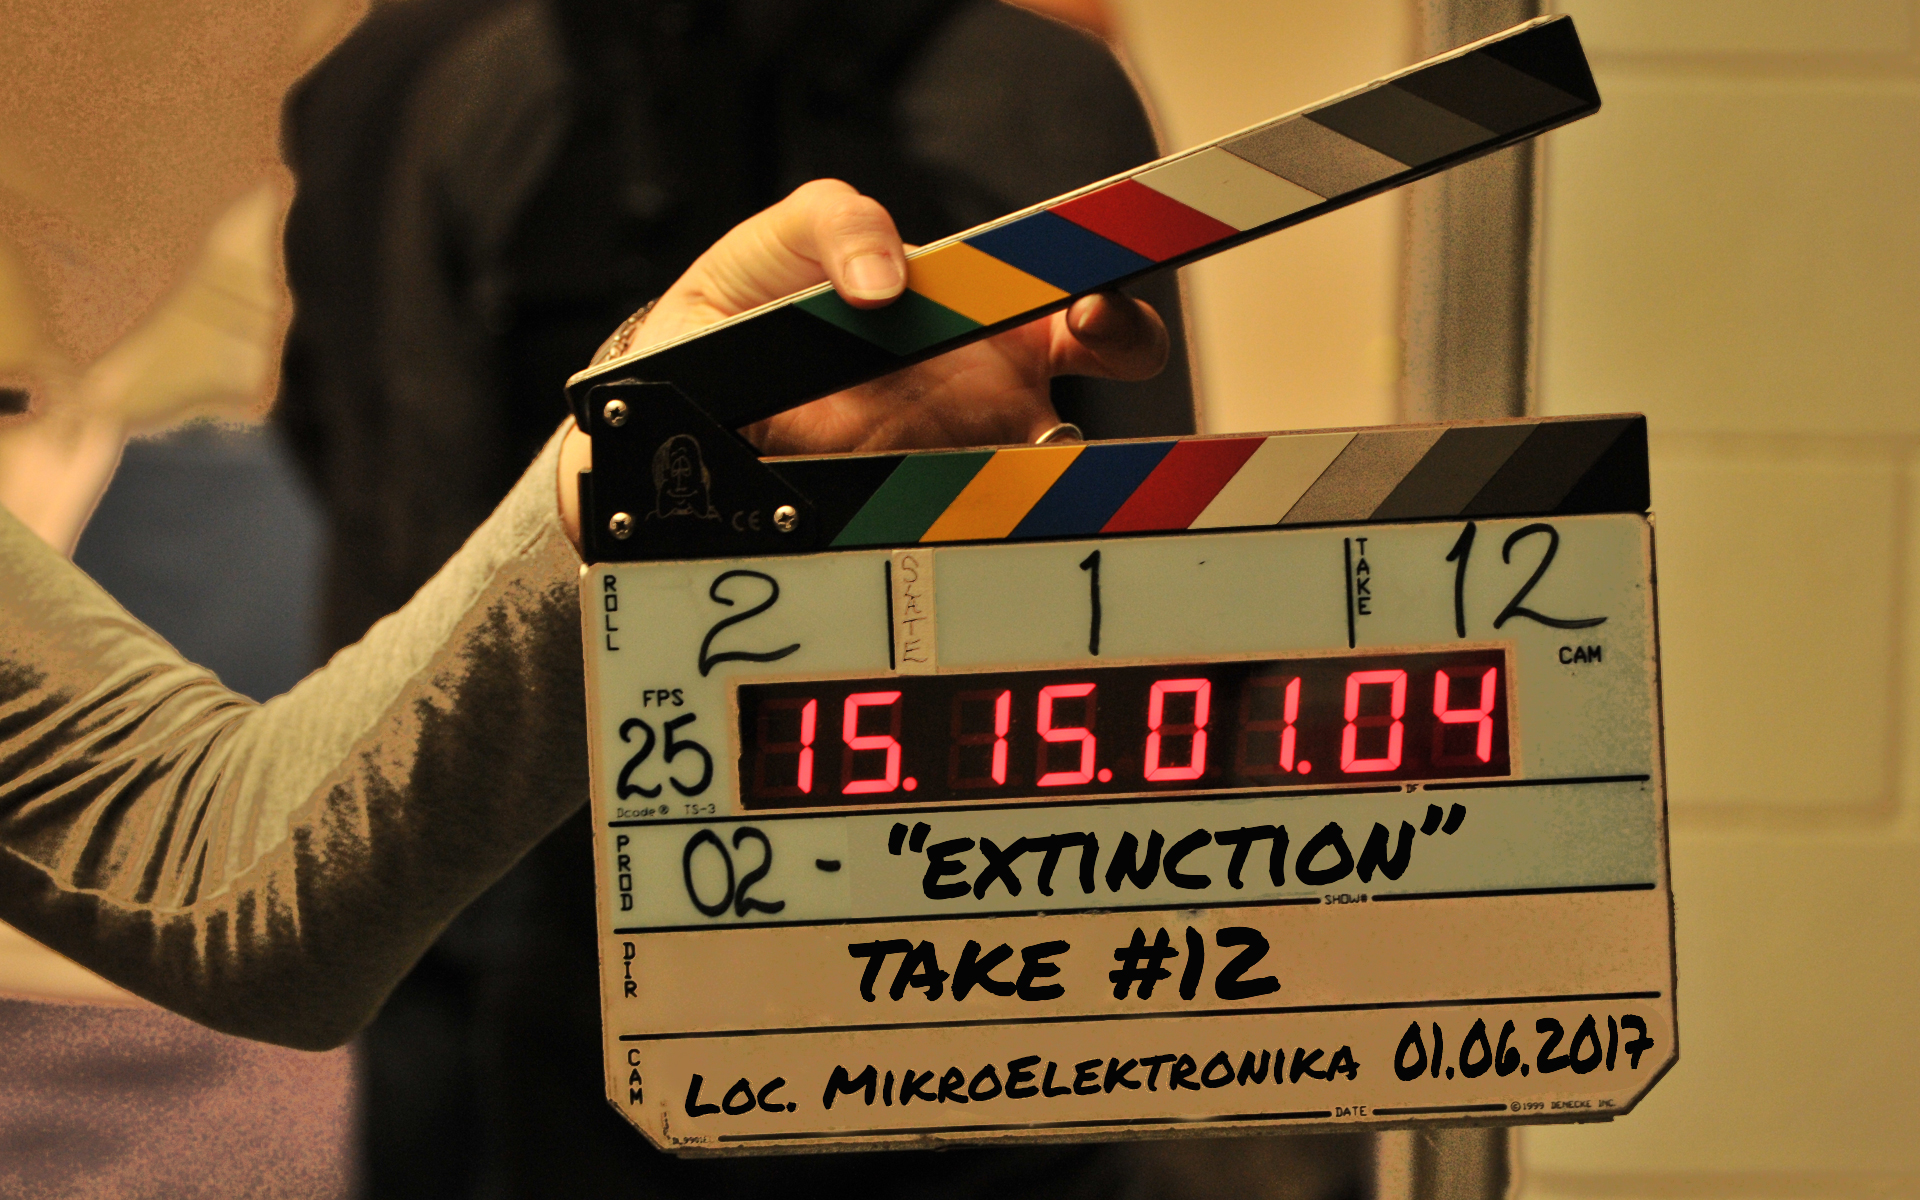 MikroElektronika was a film set for a day